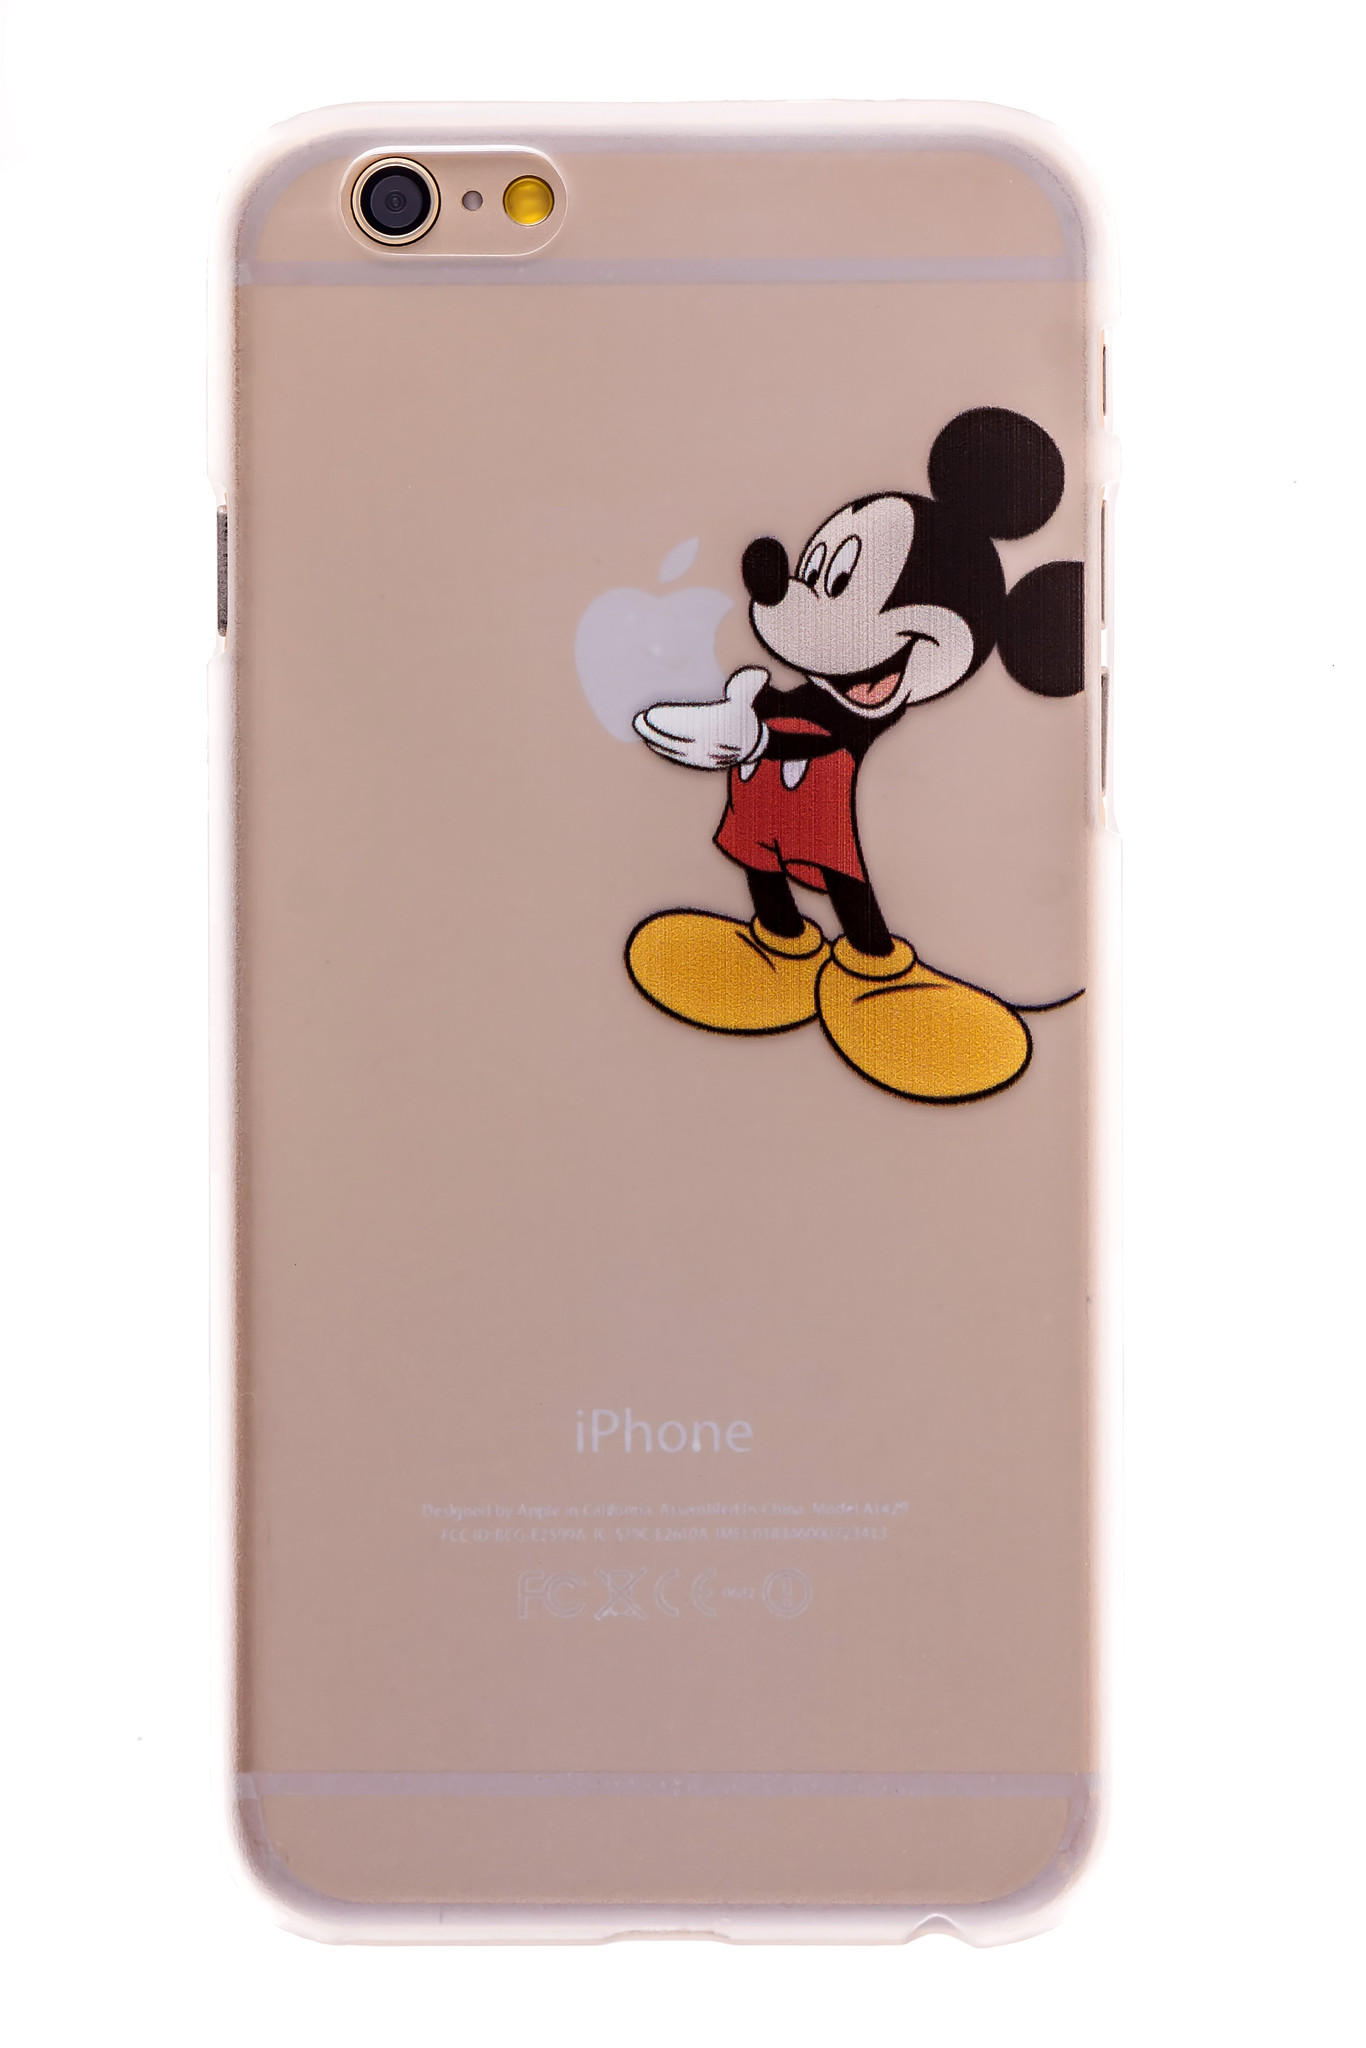 Mickey Mouse Transparent Back Cover Case From Bestcellgear